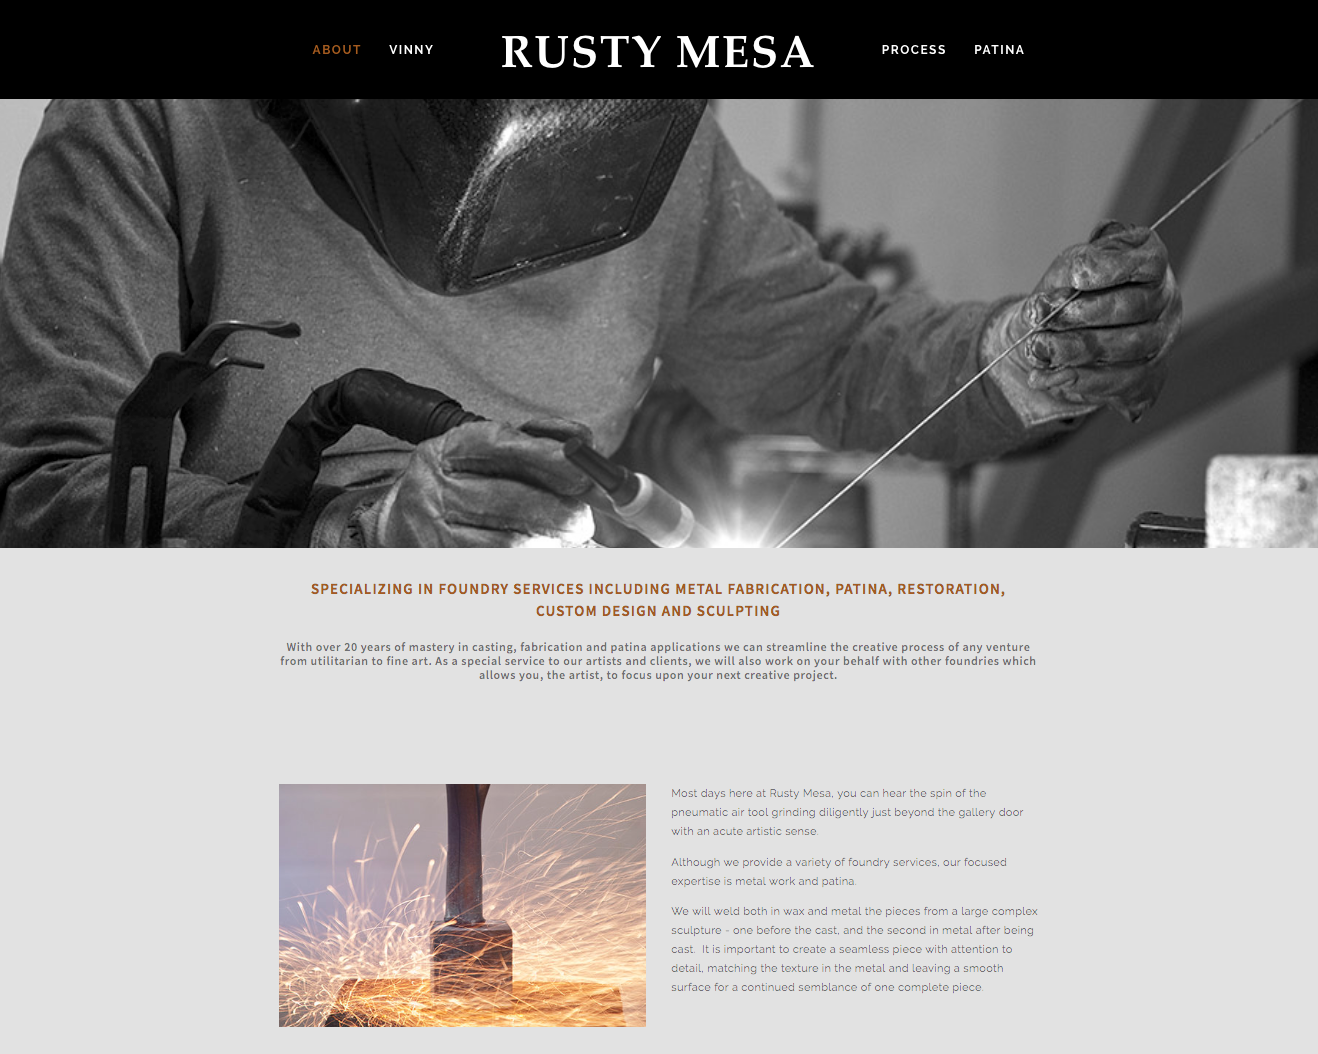 Rusty Mesa, specializing in a variety of foundry services, was in need of a better online presence, one that would engage clients in a largely behind the scenes business. Underexposed decided to take an editorial approach to the project,designing the site and photographing the business in a style that spoke to the content rich environment.